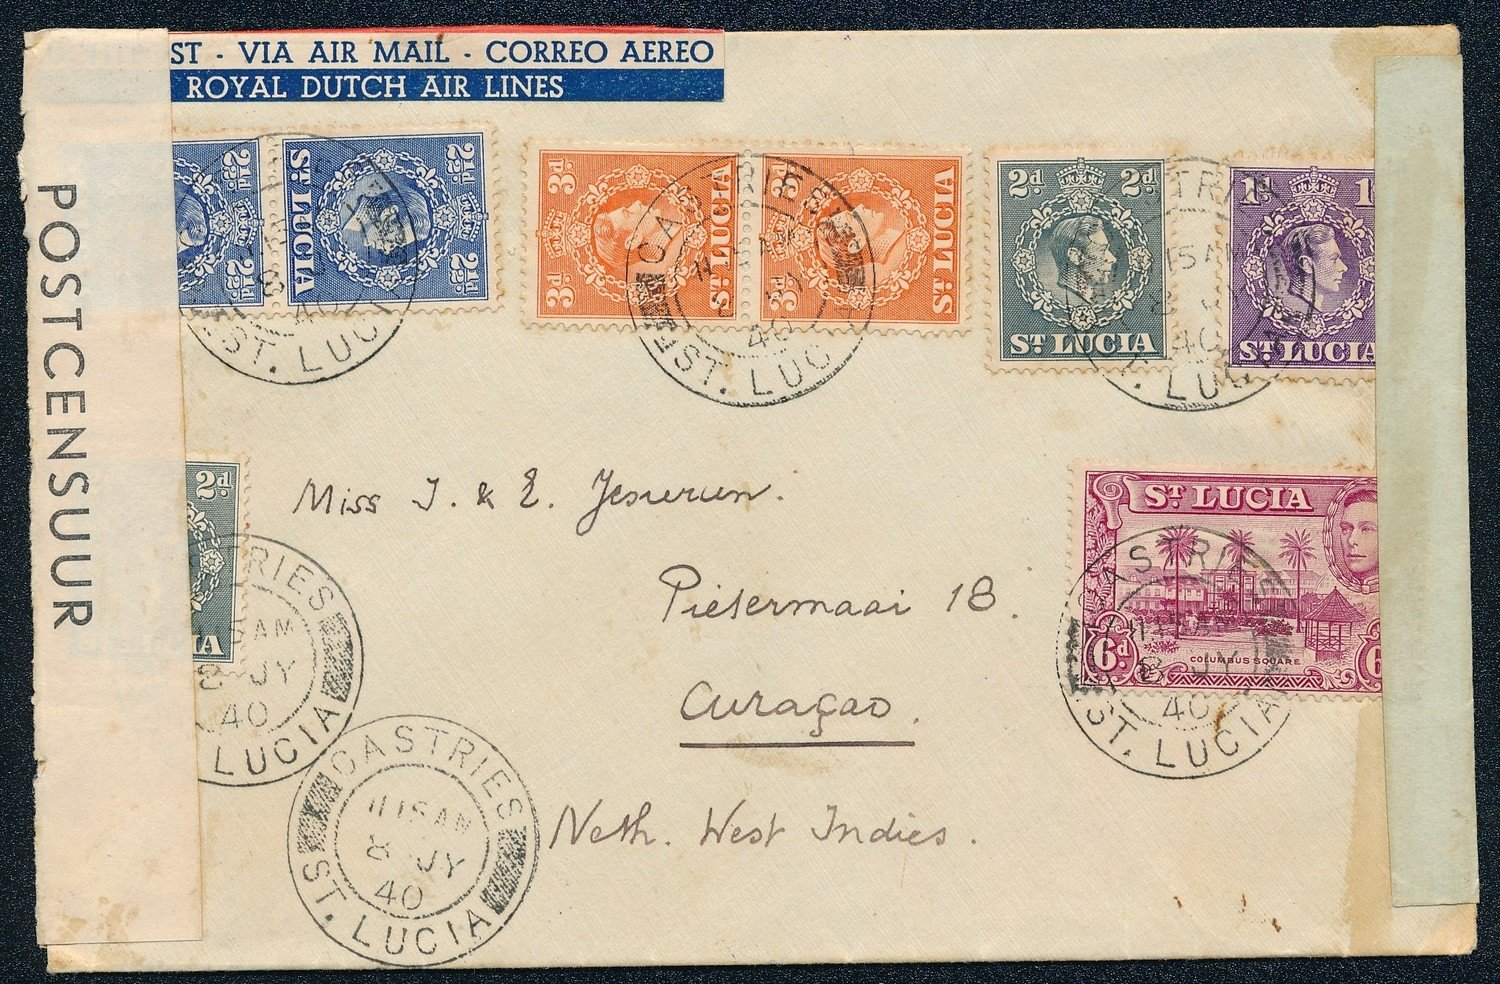 ST LUCIA air censored cover 1940 to Curaçao